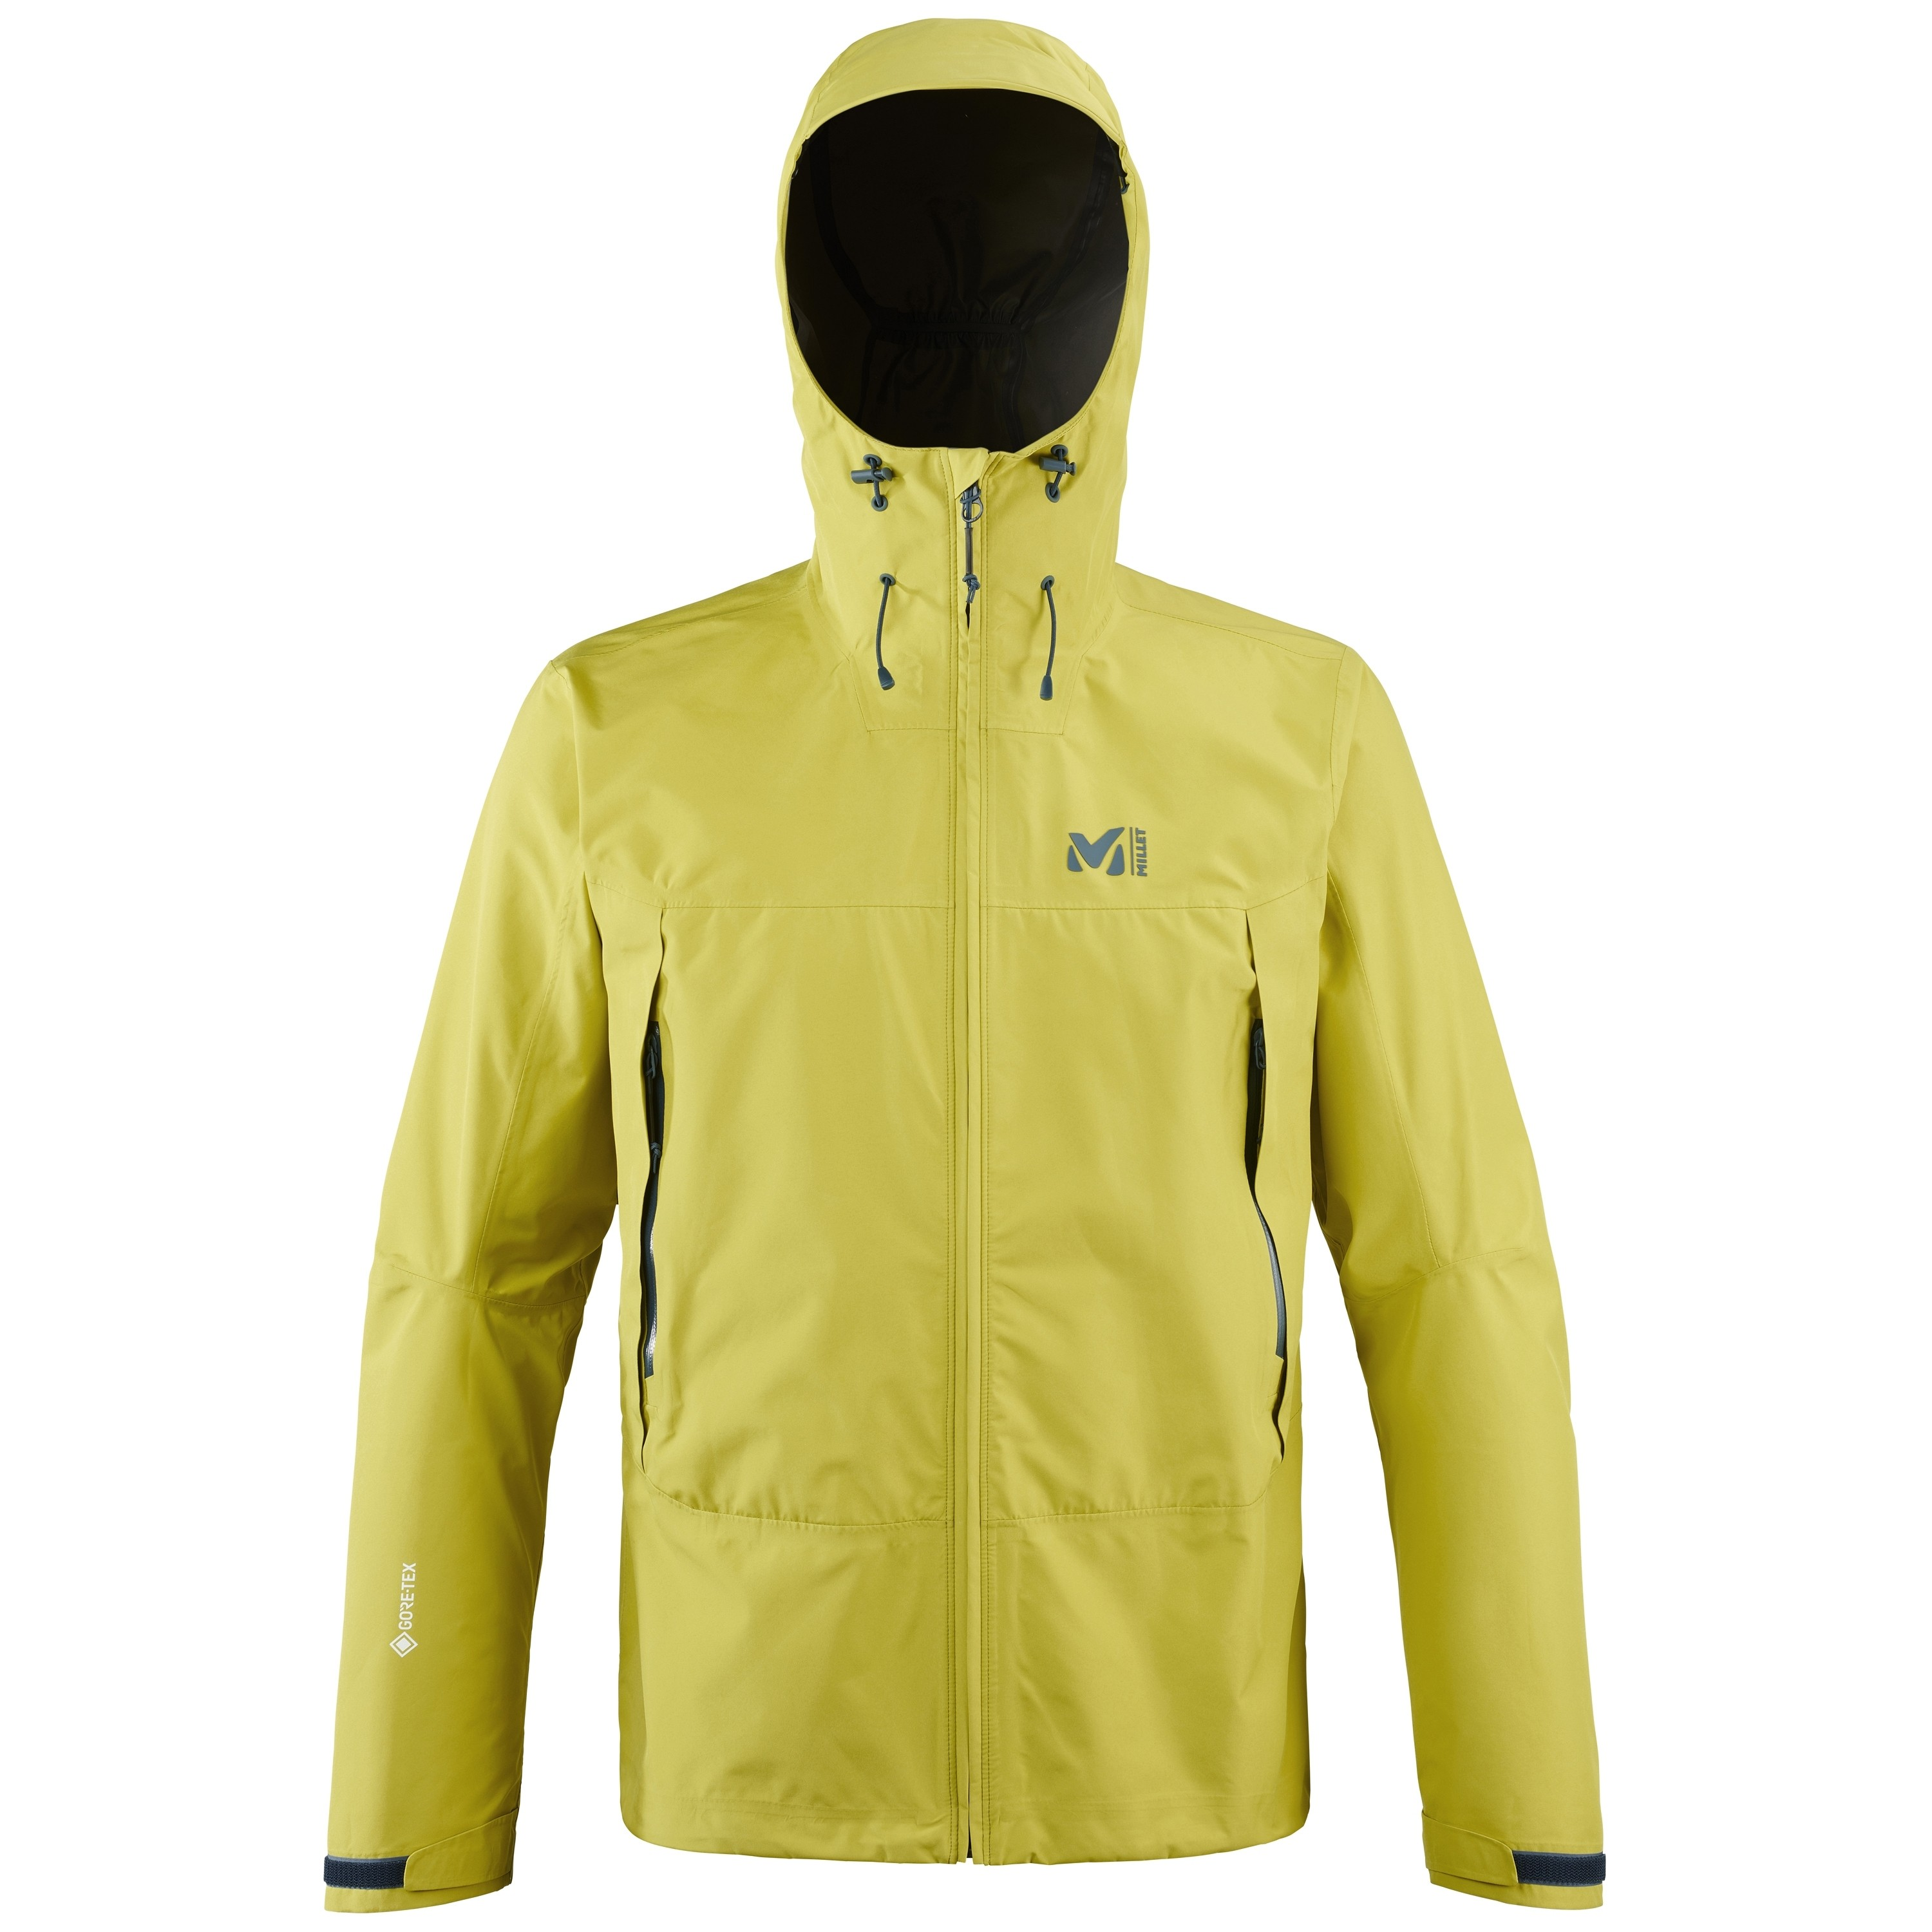 GRAYS PEAK GTX JKT M